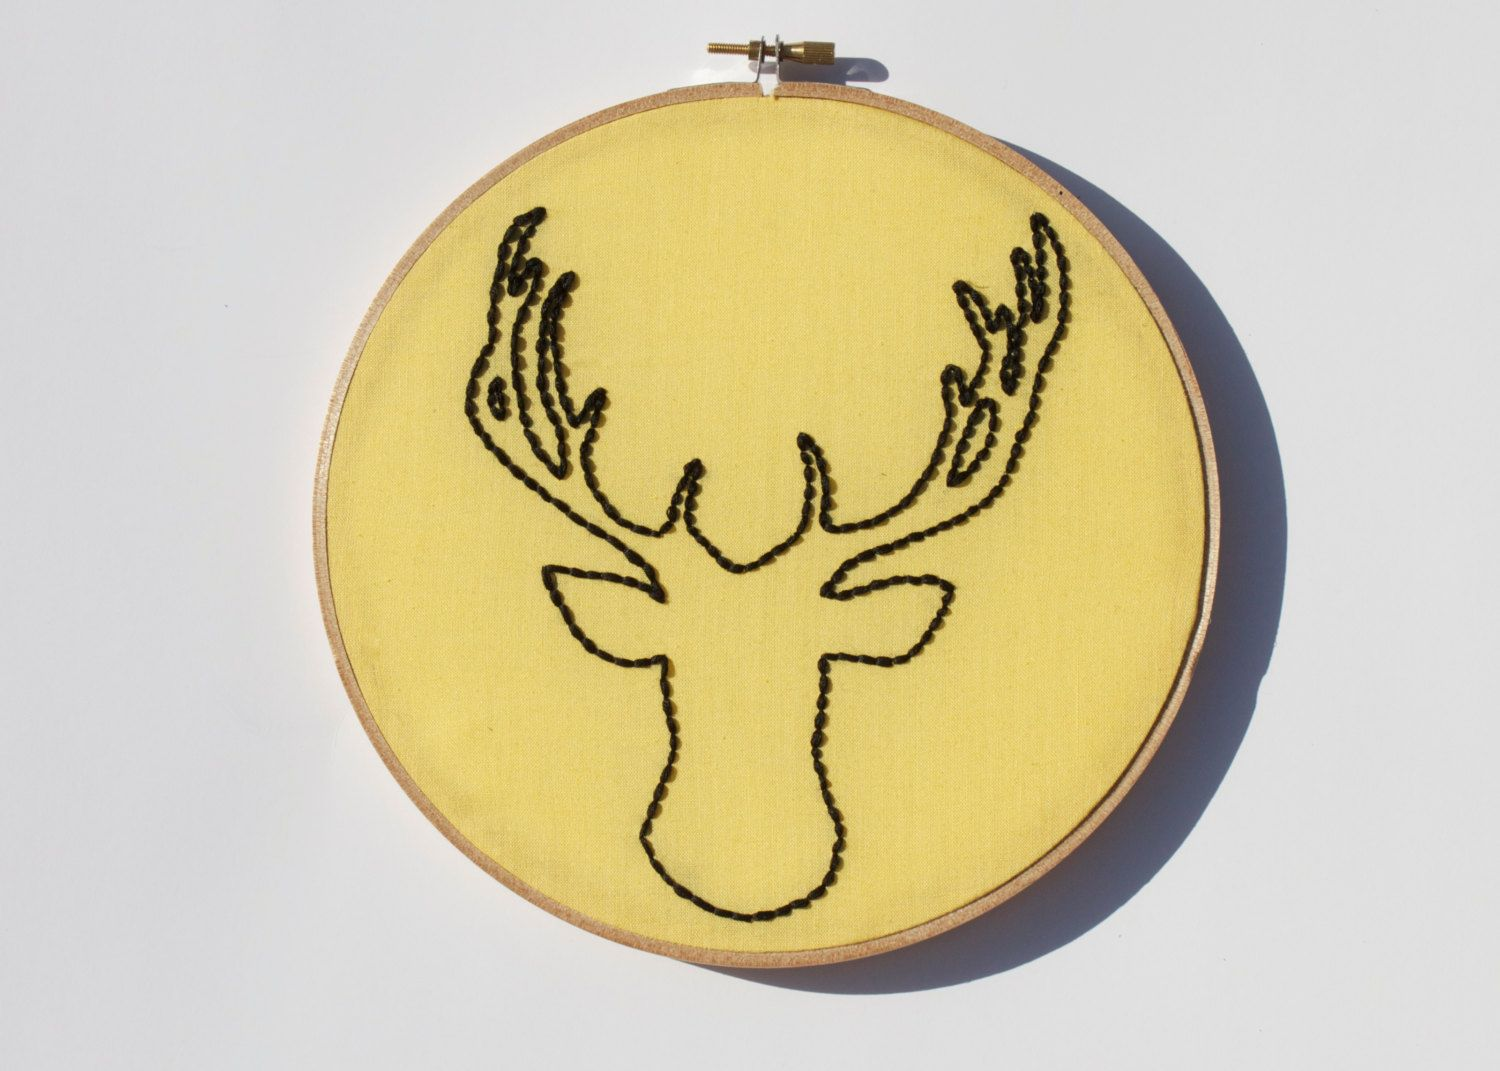 Stag Silhouette - Taxidermy Deer Silhouette - Embroidery Wall Art ...